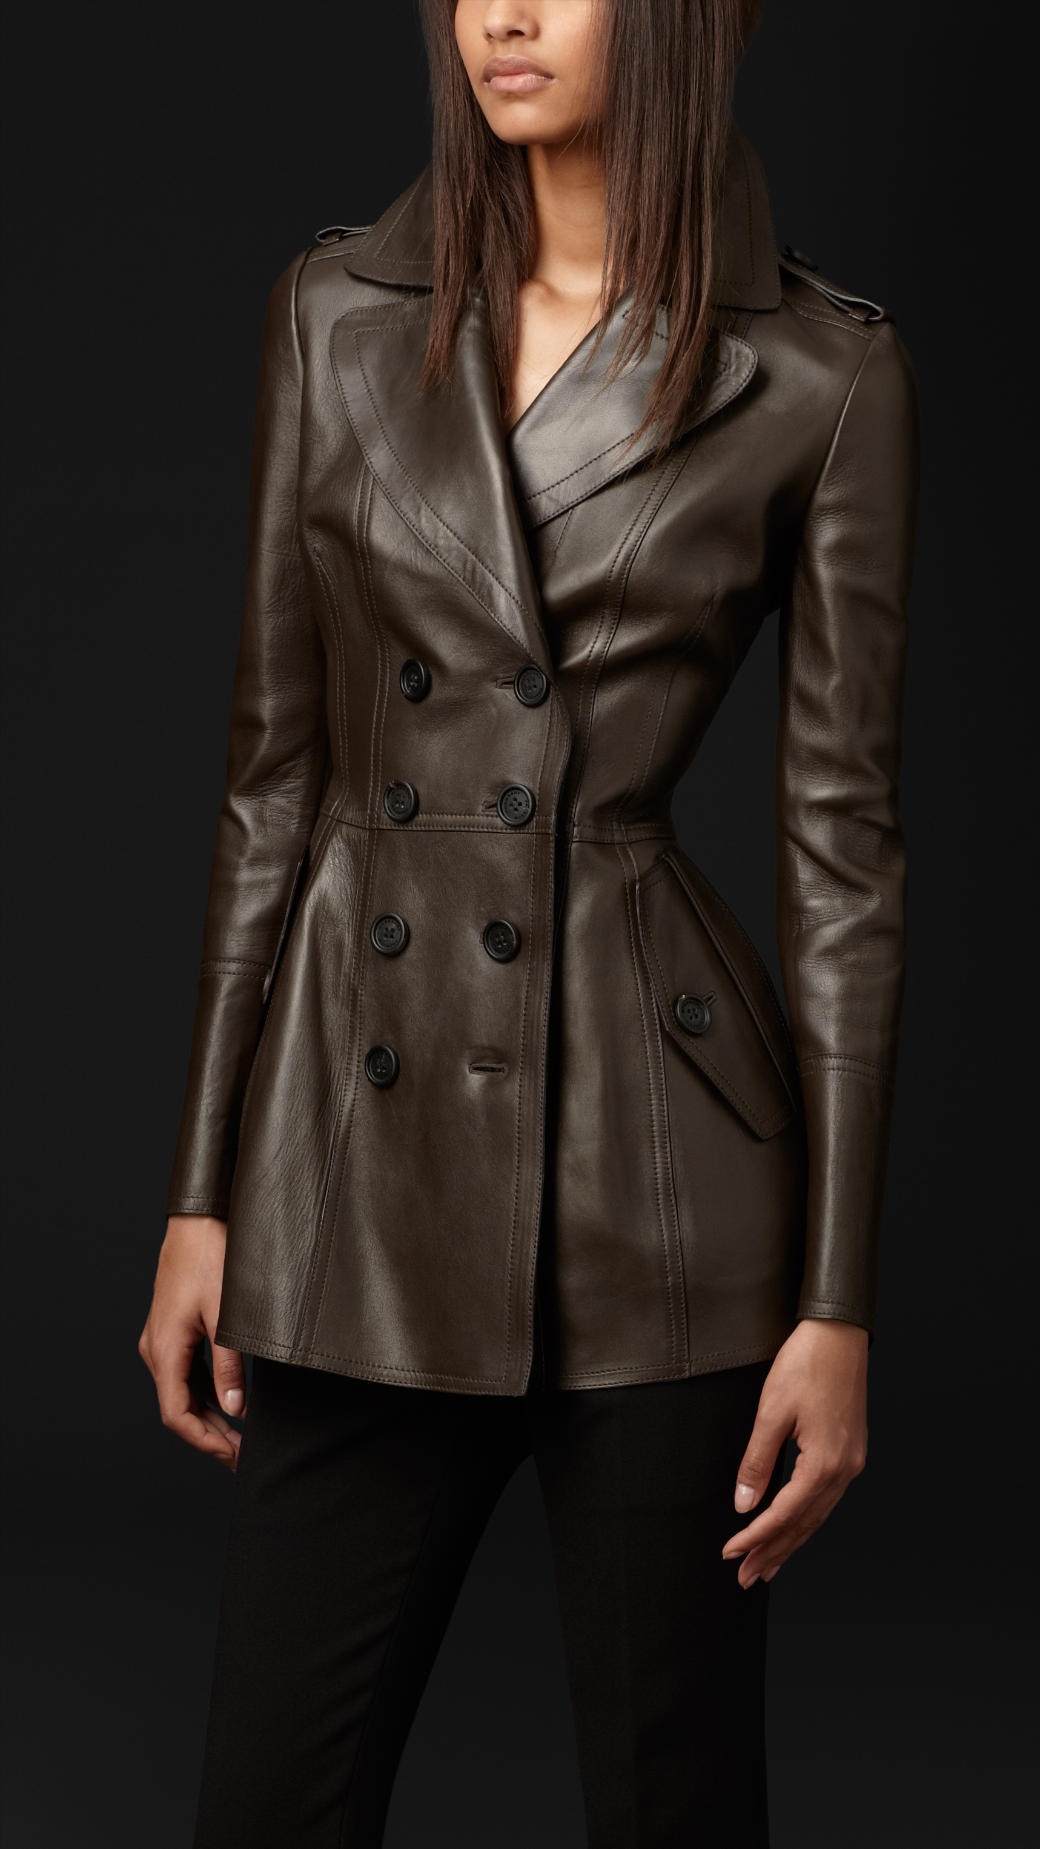 Burberry prorsum studded leather jacket